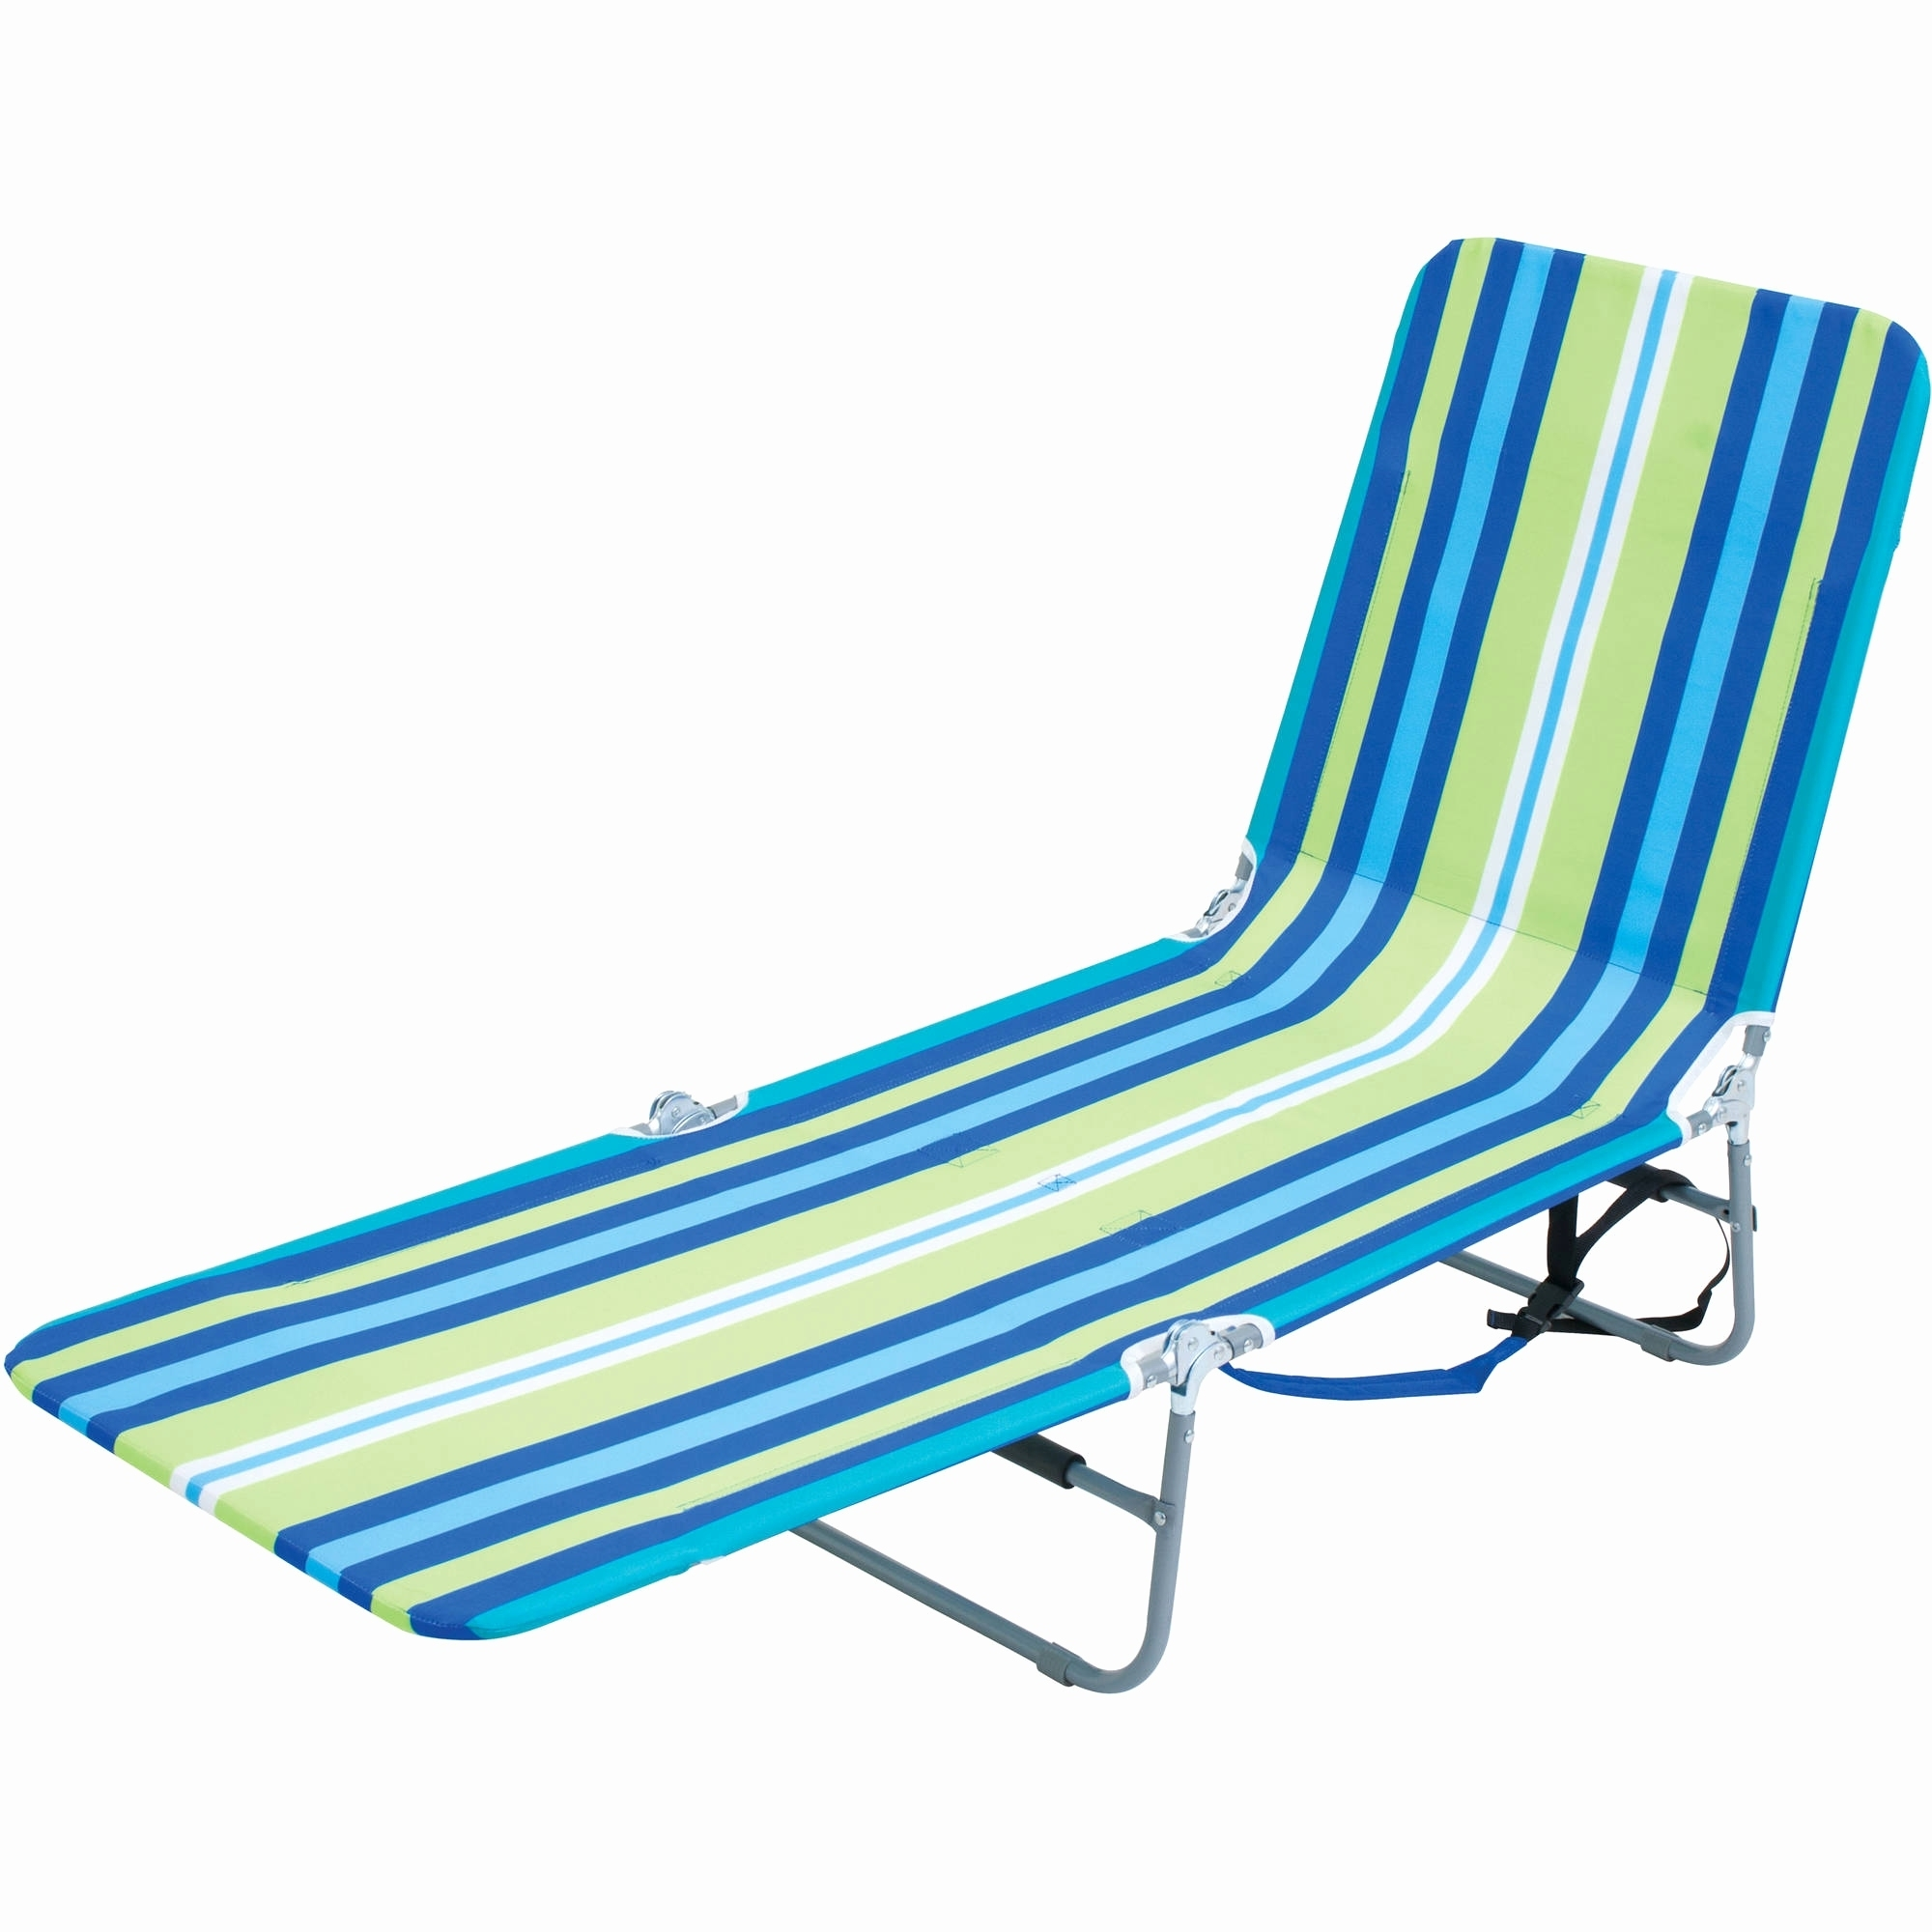 Chaise Lounge Chairs At Walmart Within Best And Newest Picture 10 Of 30 – Outdoor Lounge Chairs Walmart Inspirational (View 3 of 15)